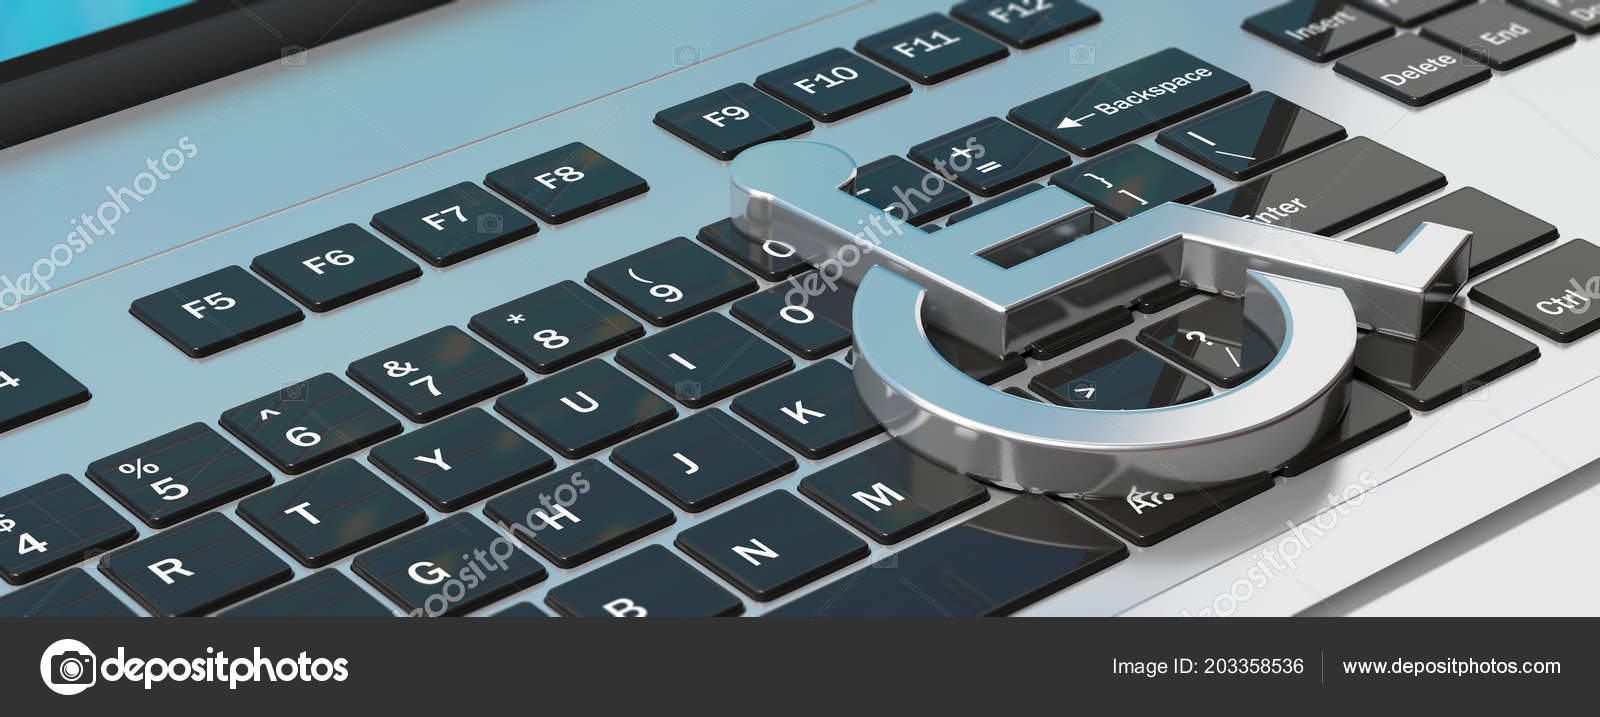 Technology Disabled Wheelchair Sign Computer Laptop Keyboard Banner Illustration Stock Photo C Gioiak2 203358536